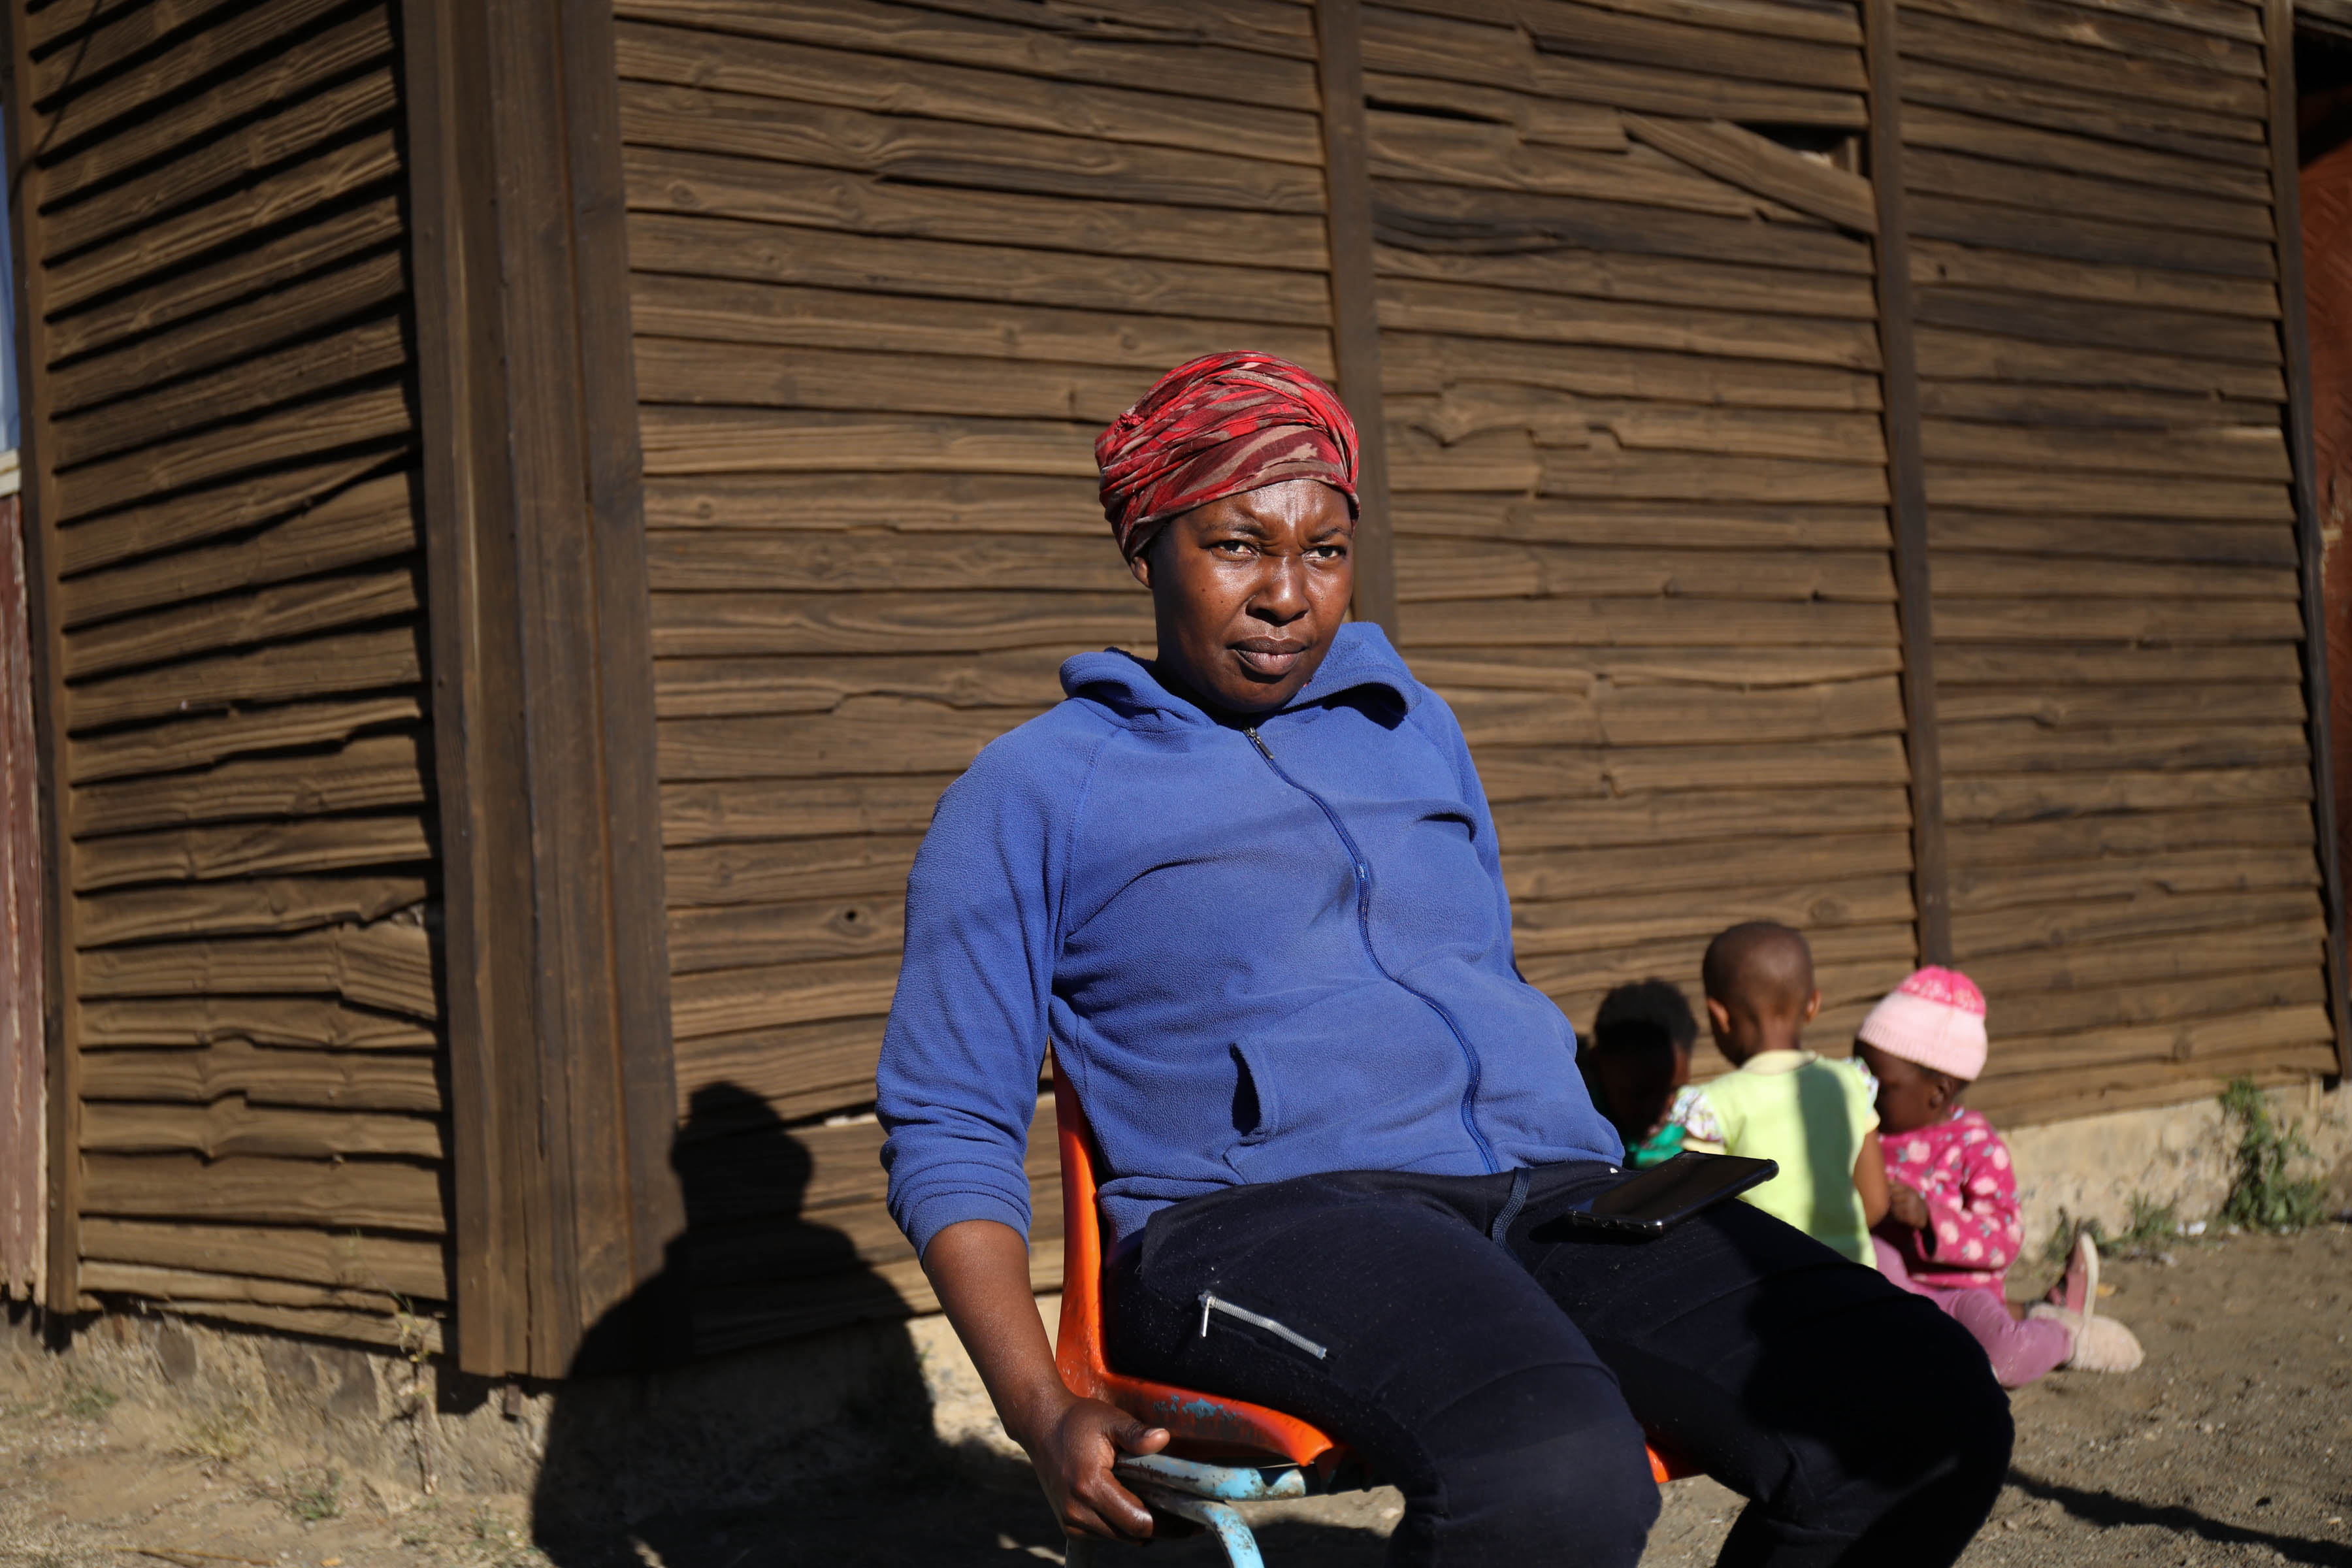 11 July 2019: Keneilwe Lekhaliswe lives in a rickety wooden house built by the Bophuthatswana government. She is struggling to get an RDP house in Thaba Nchu